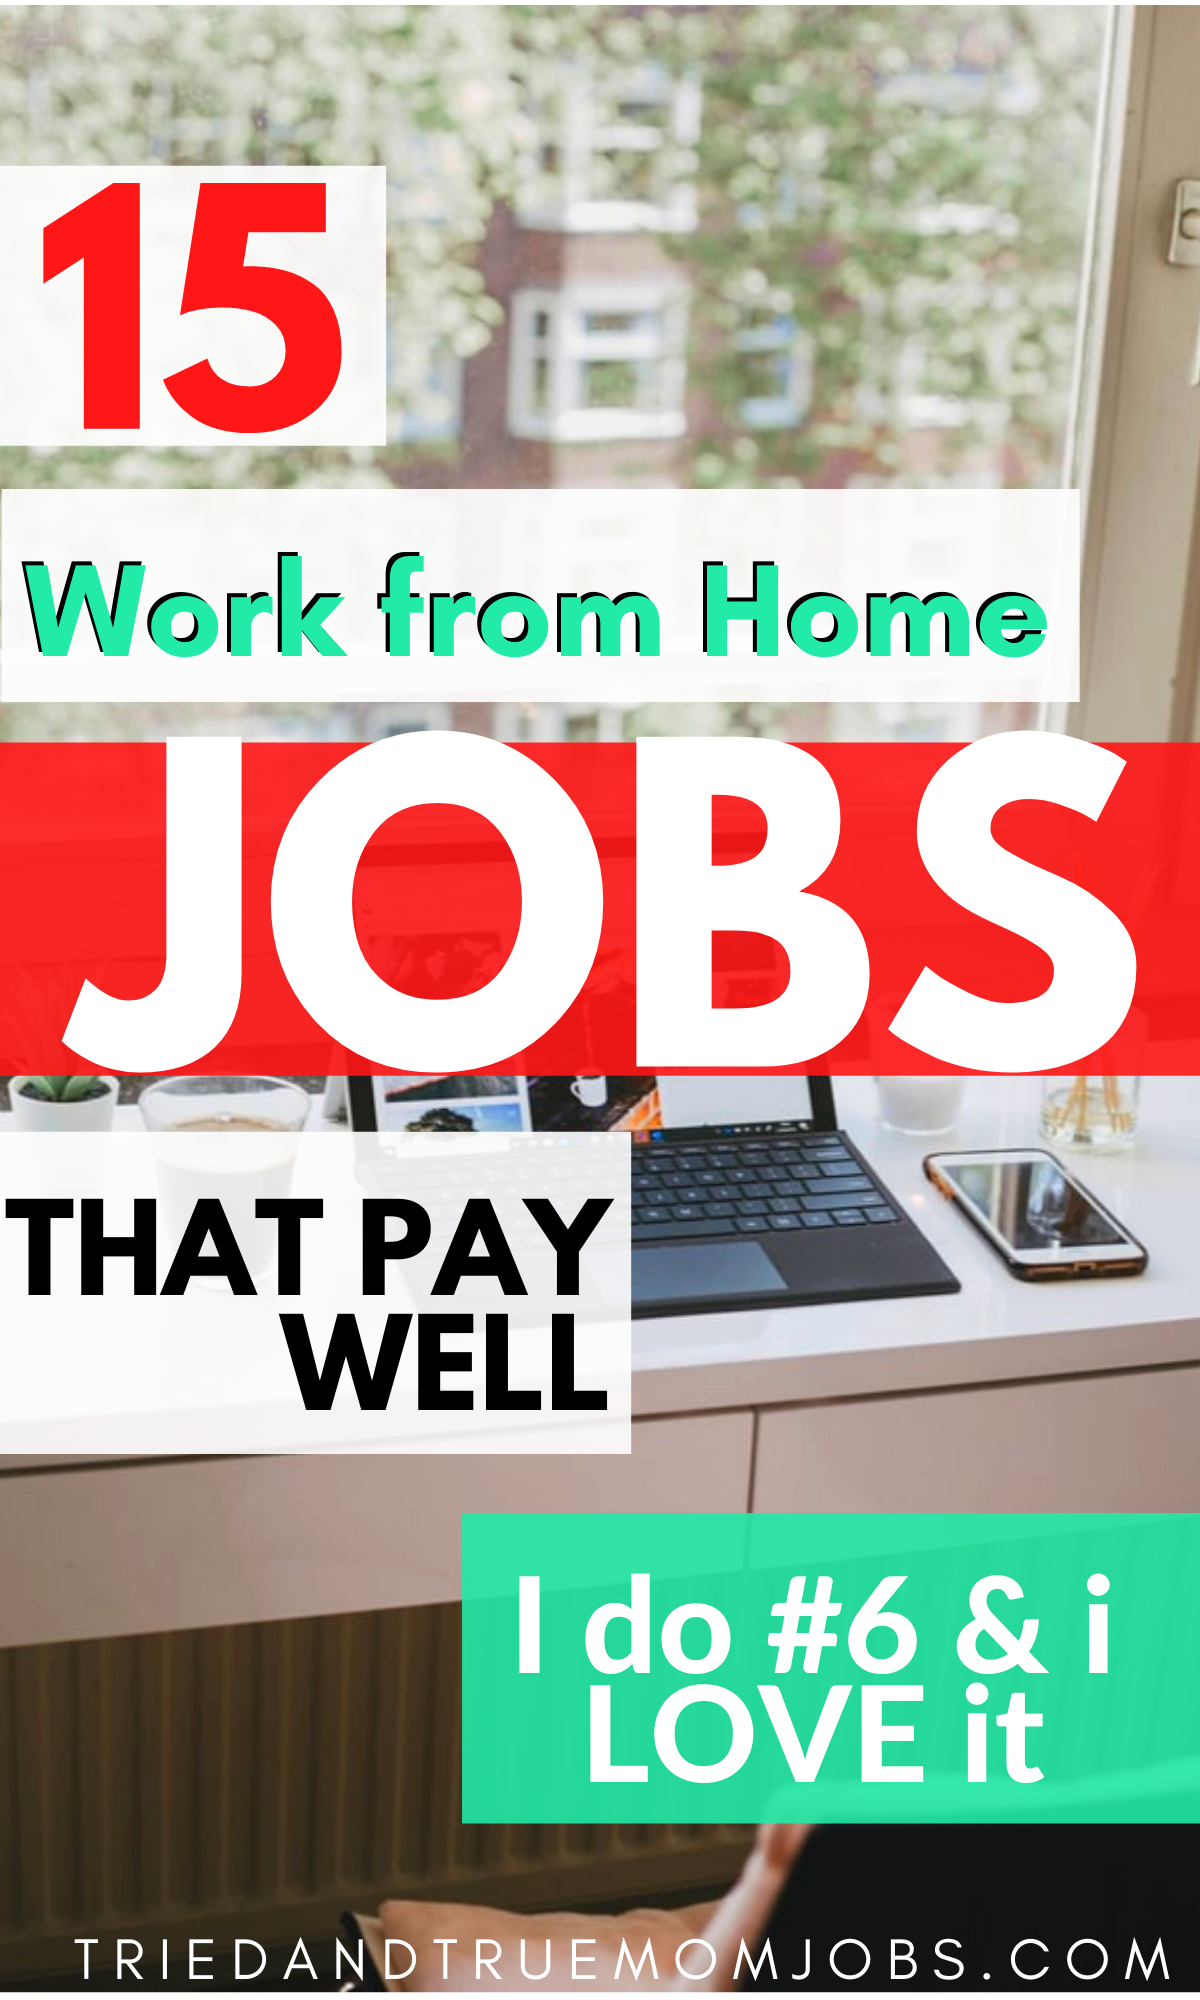 15 Real Work From Home Jobs In 2021 That Pay Well All Tried Tested Work From Home Jobs Home Jobs Work From Home Tips